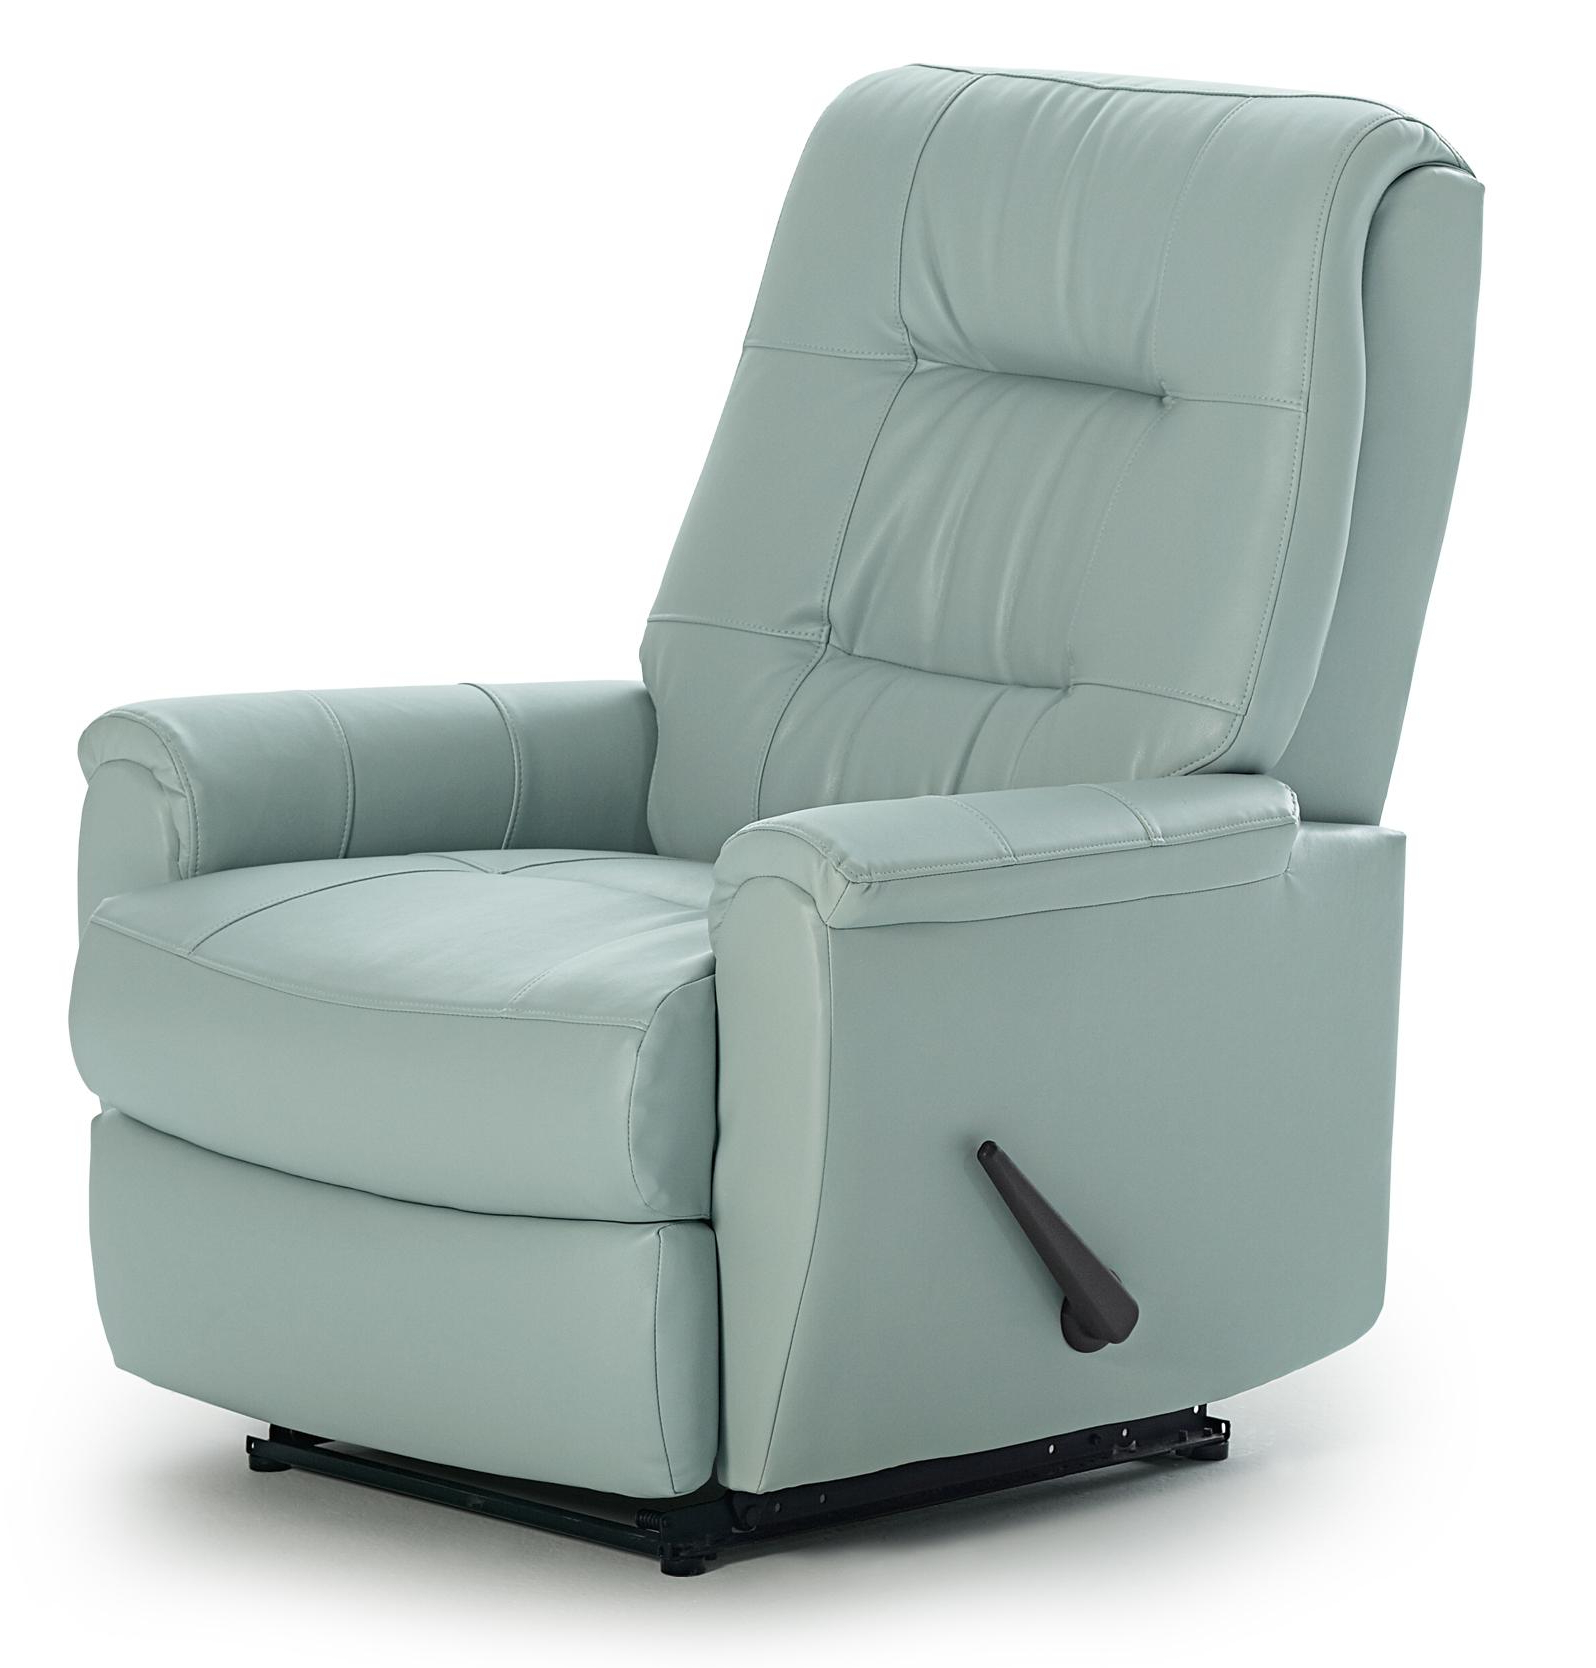 Intended For Most Popular Decker Ii Fabric Swivel Rocker Recliners (View 11 of 20)